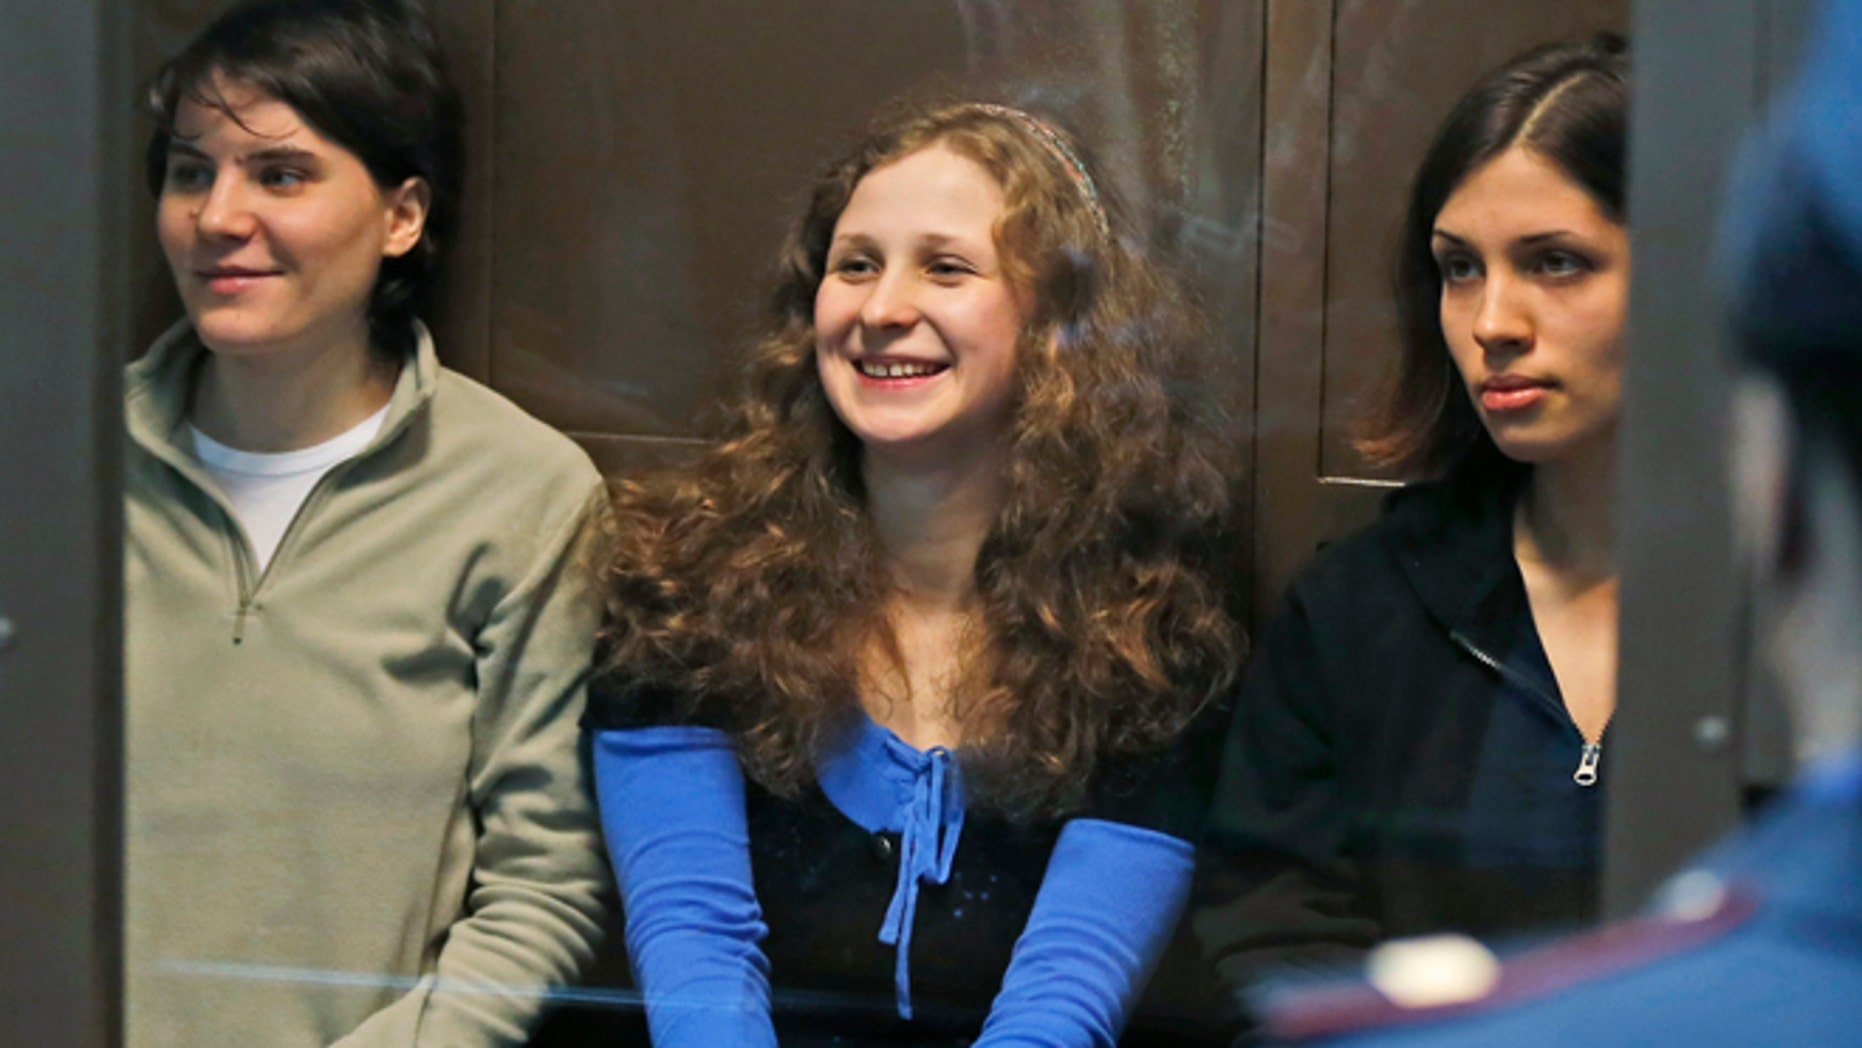 In this Wednesday, Oct. 10, 2012 file photo, feminist punk group Pussy Riot members, from left, Yekaterina Samutsevich, Maria Alekhina and Nadezhda Tolokonnikova sit in a glass cage at a court room in Moscow, Russia.